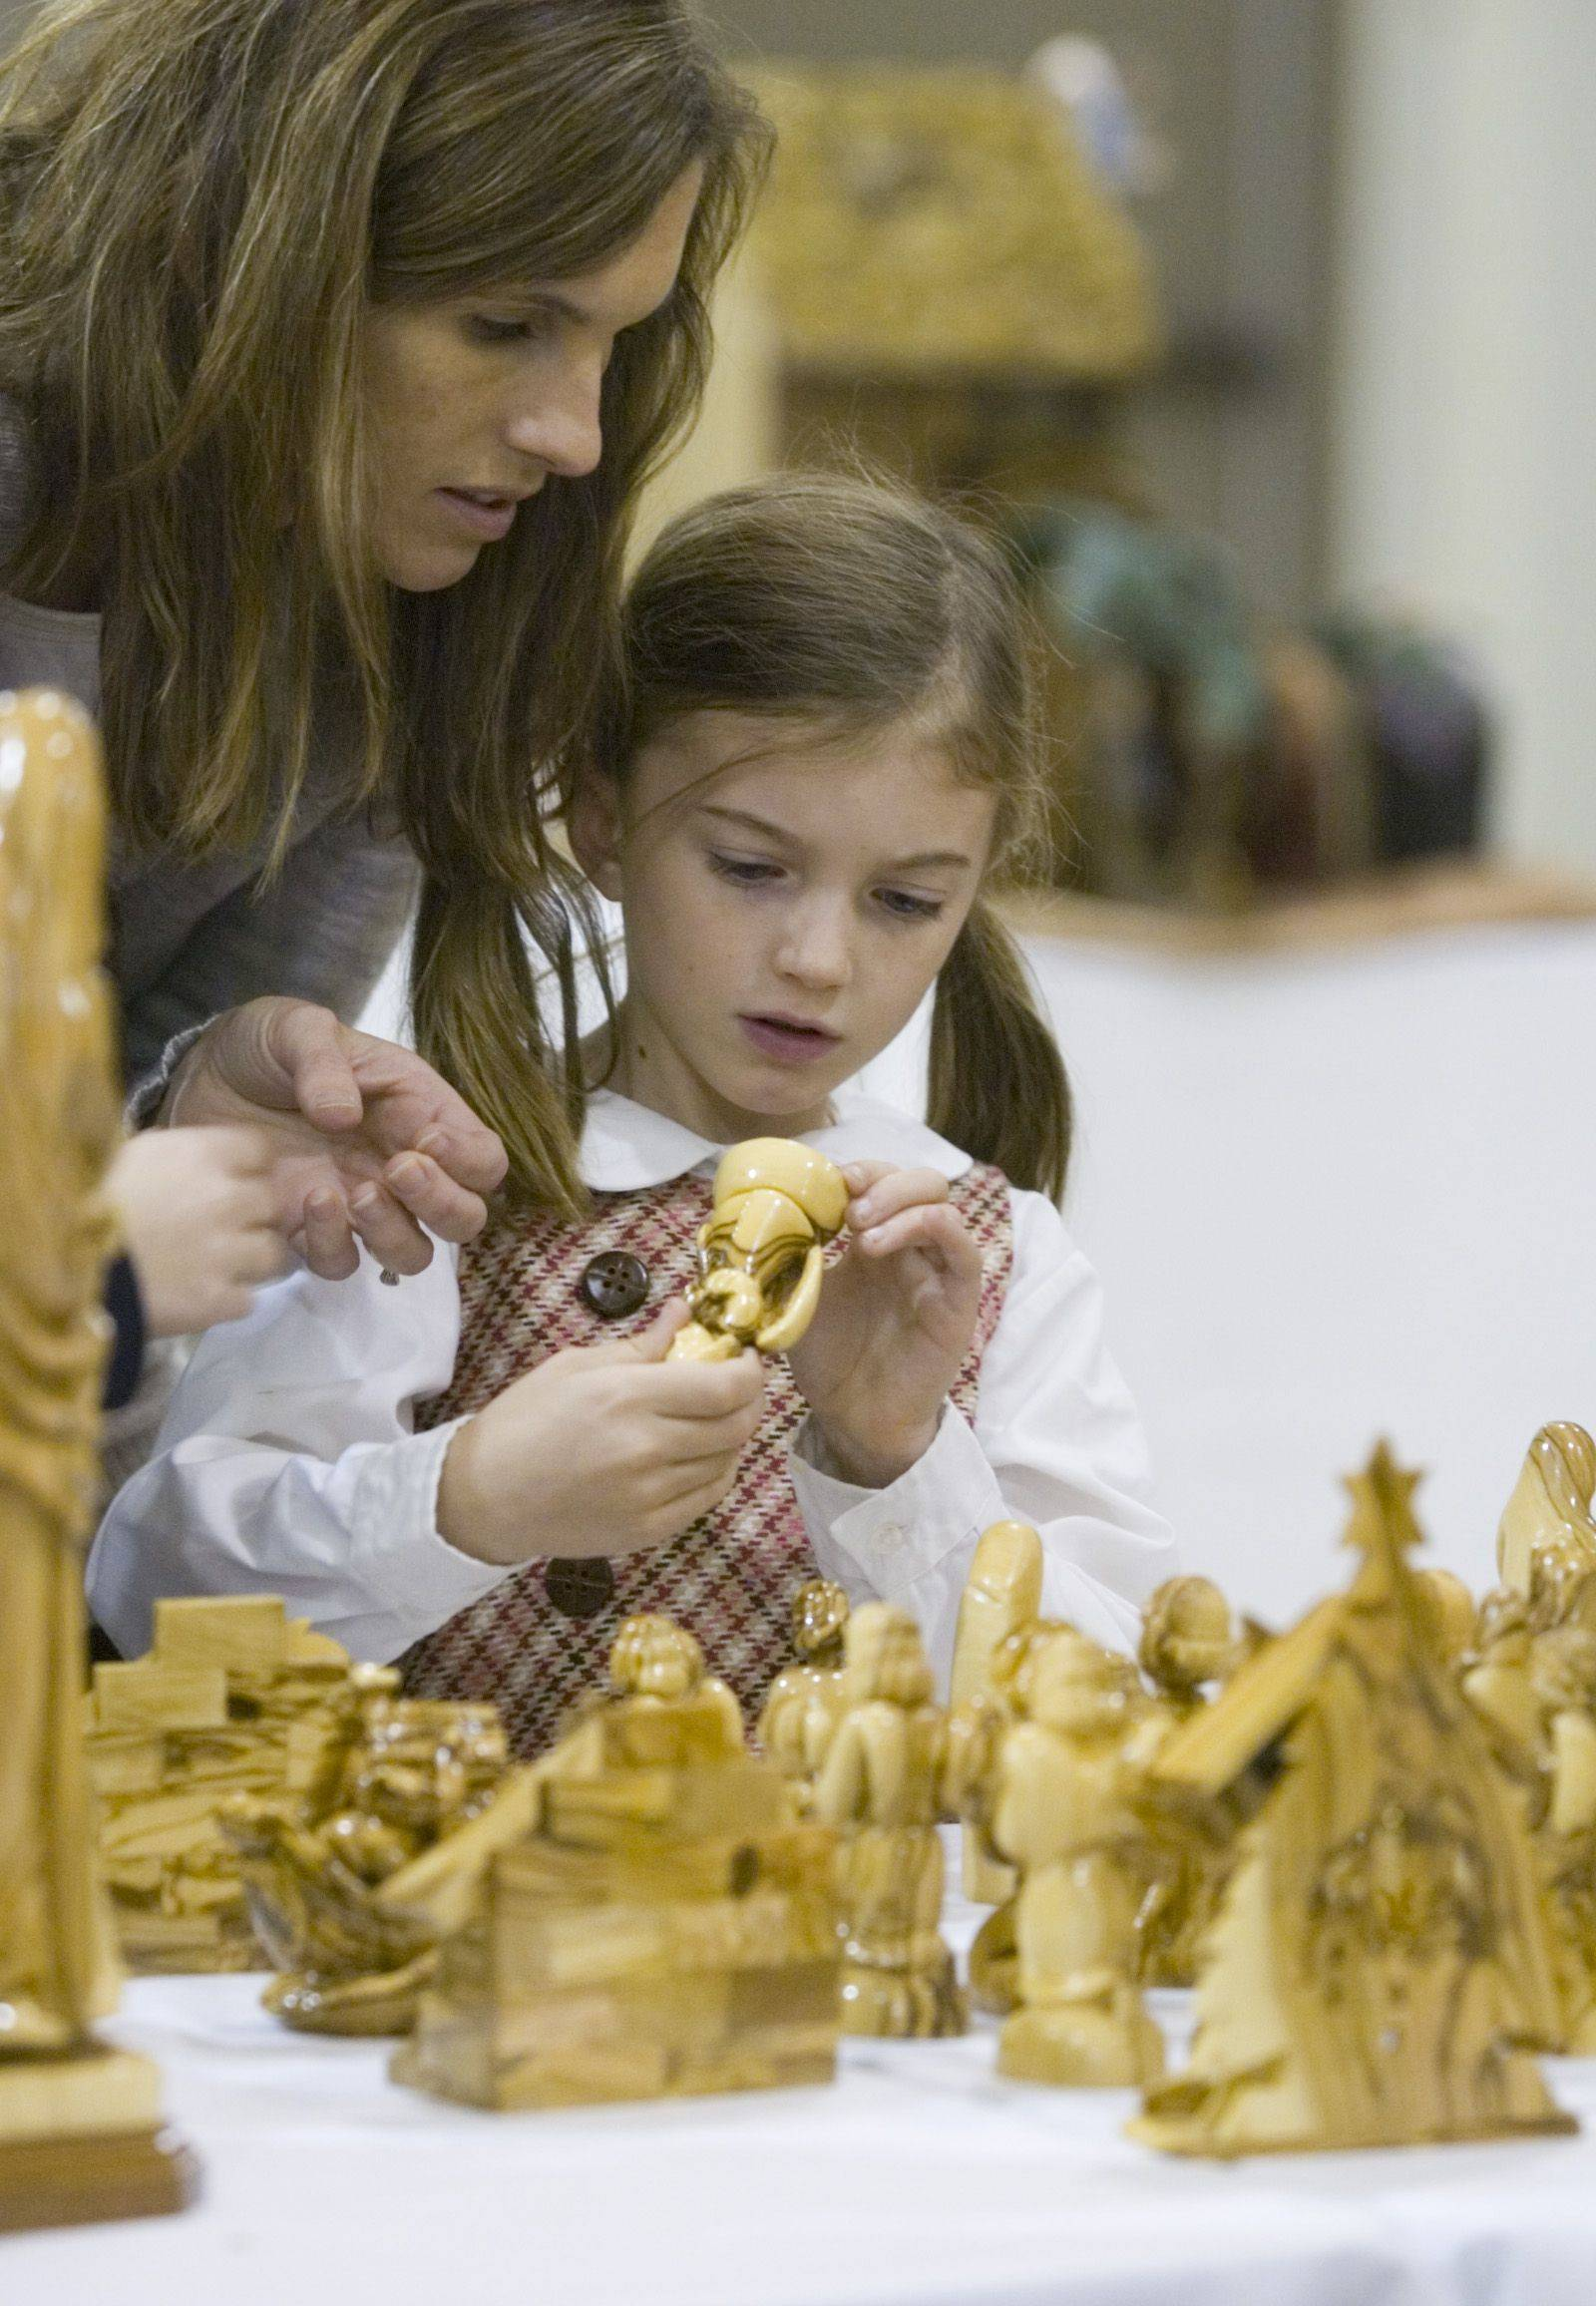 Molly Regan, age 6, and her mother, Judy Regan from Geneva, check out the handcrafted display pieces on display at St. Peter's Church in Geneva Sunday afternoon during the Nativity Exhibition.